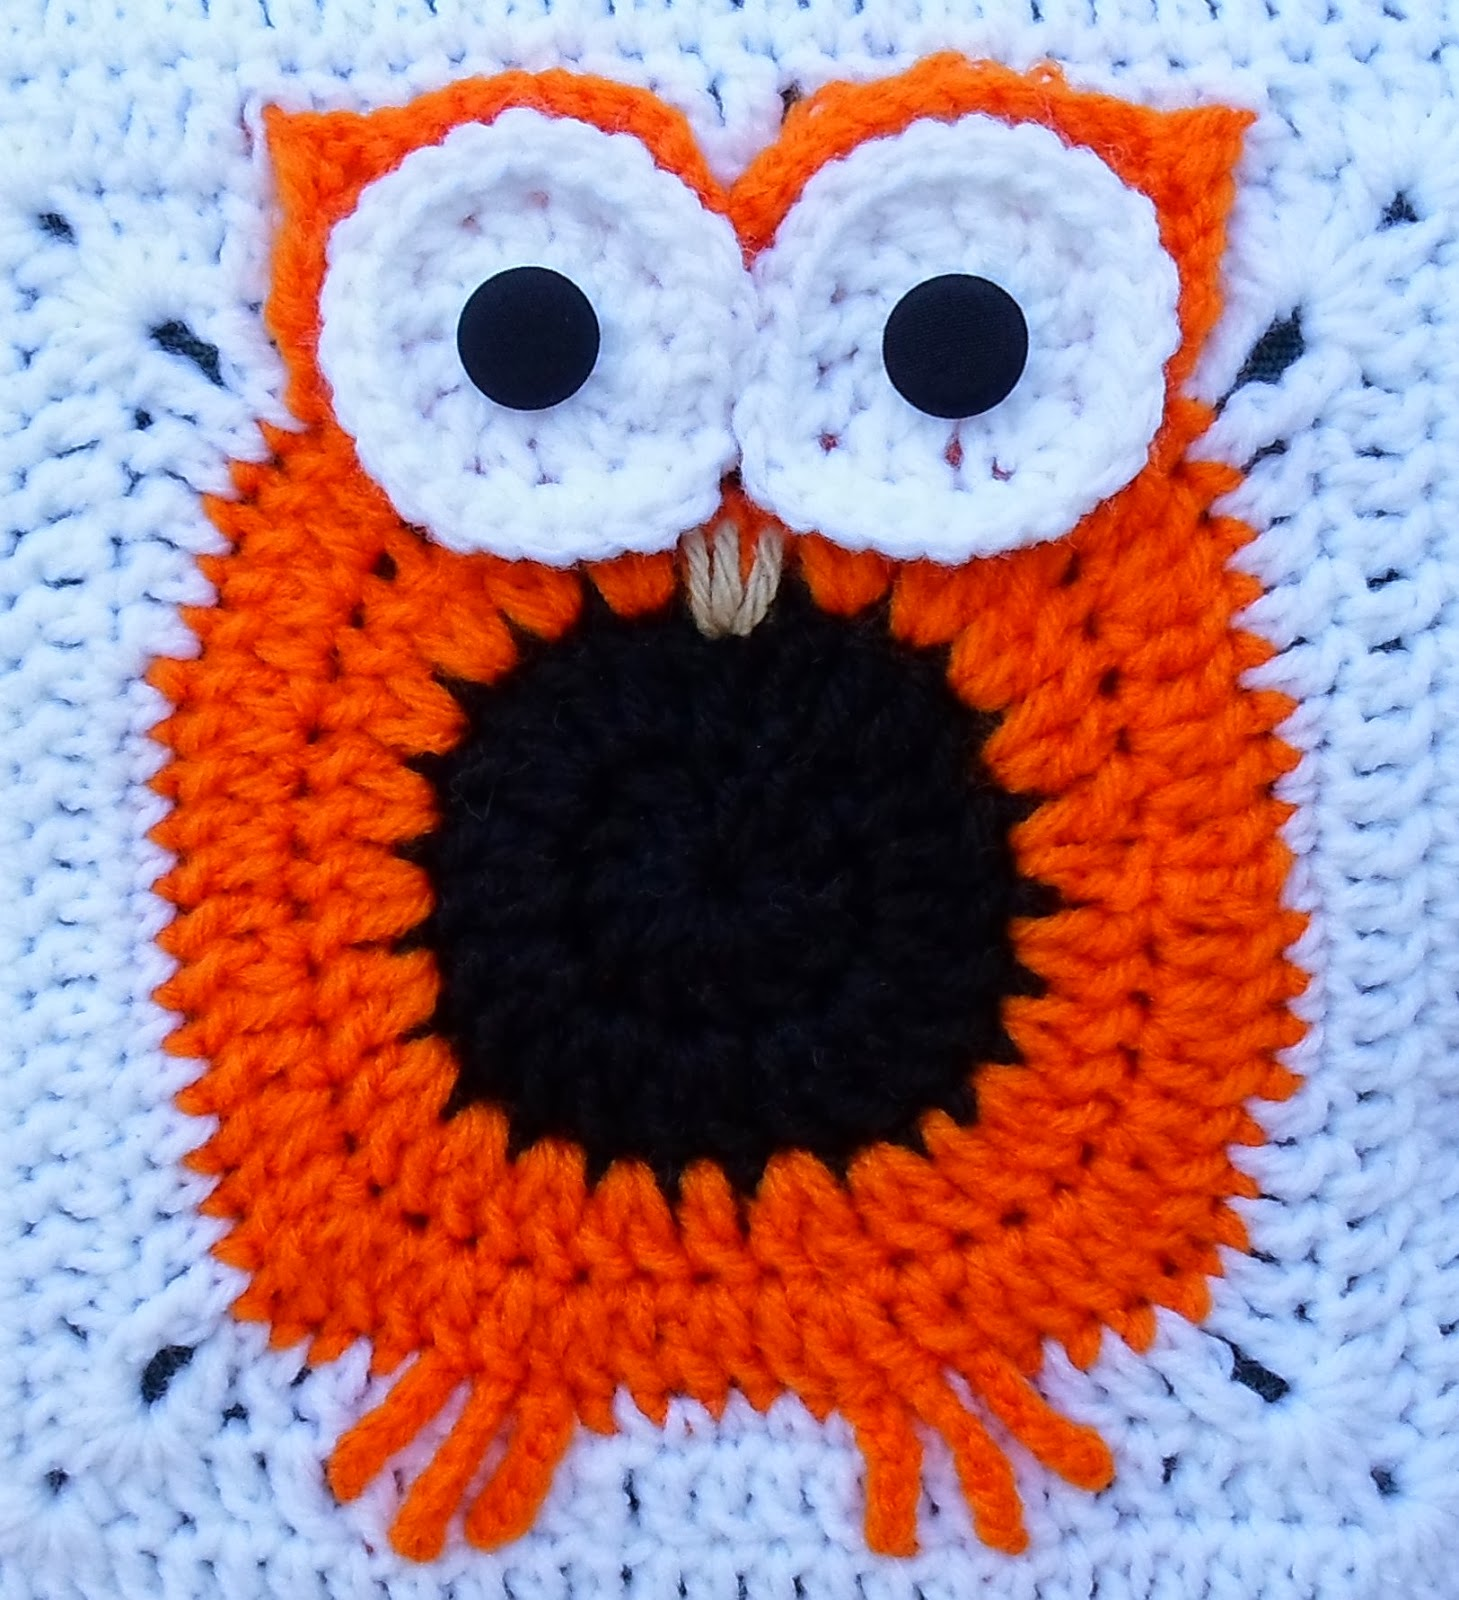 Owl Pillow Pattern Happier Than A Pig In Mud Crochet Owl Pillow Cover Pattern